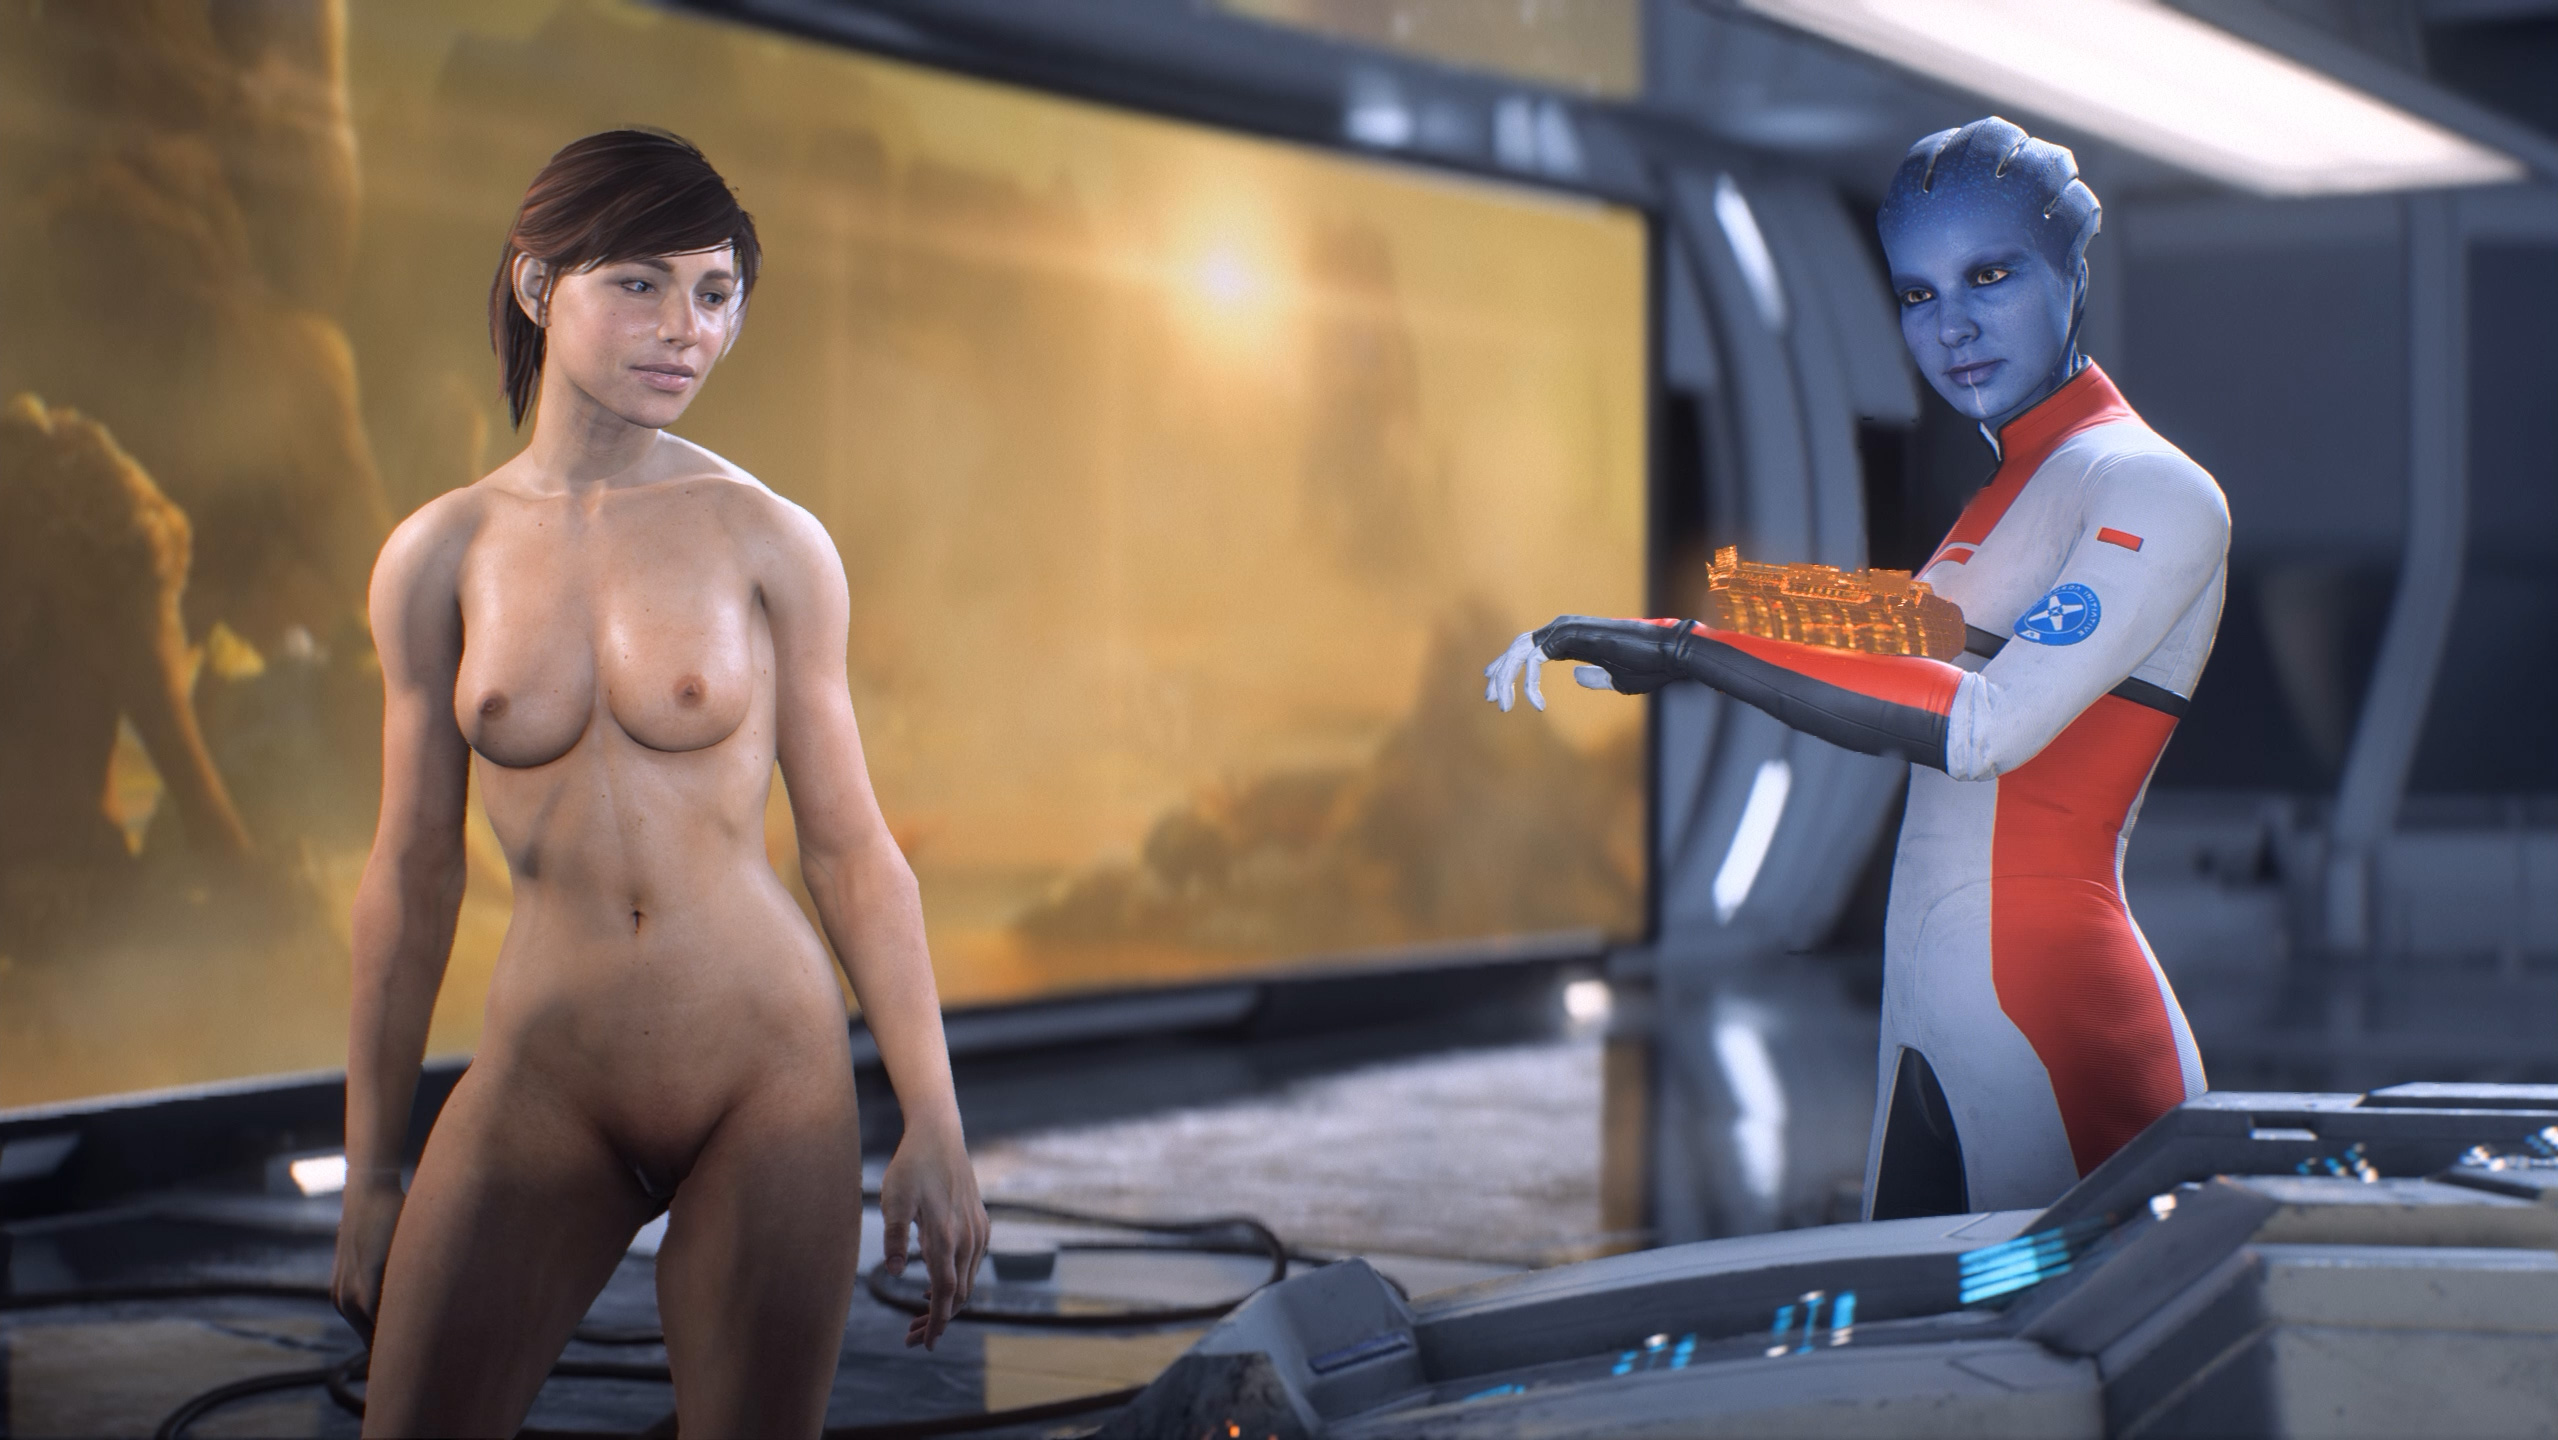 Mass effect nude game sexy pic